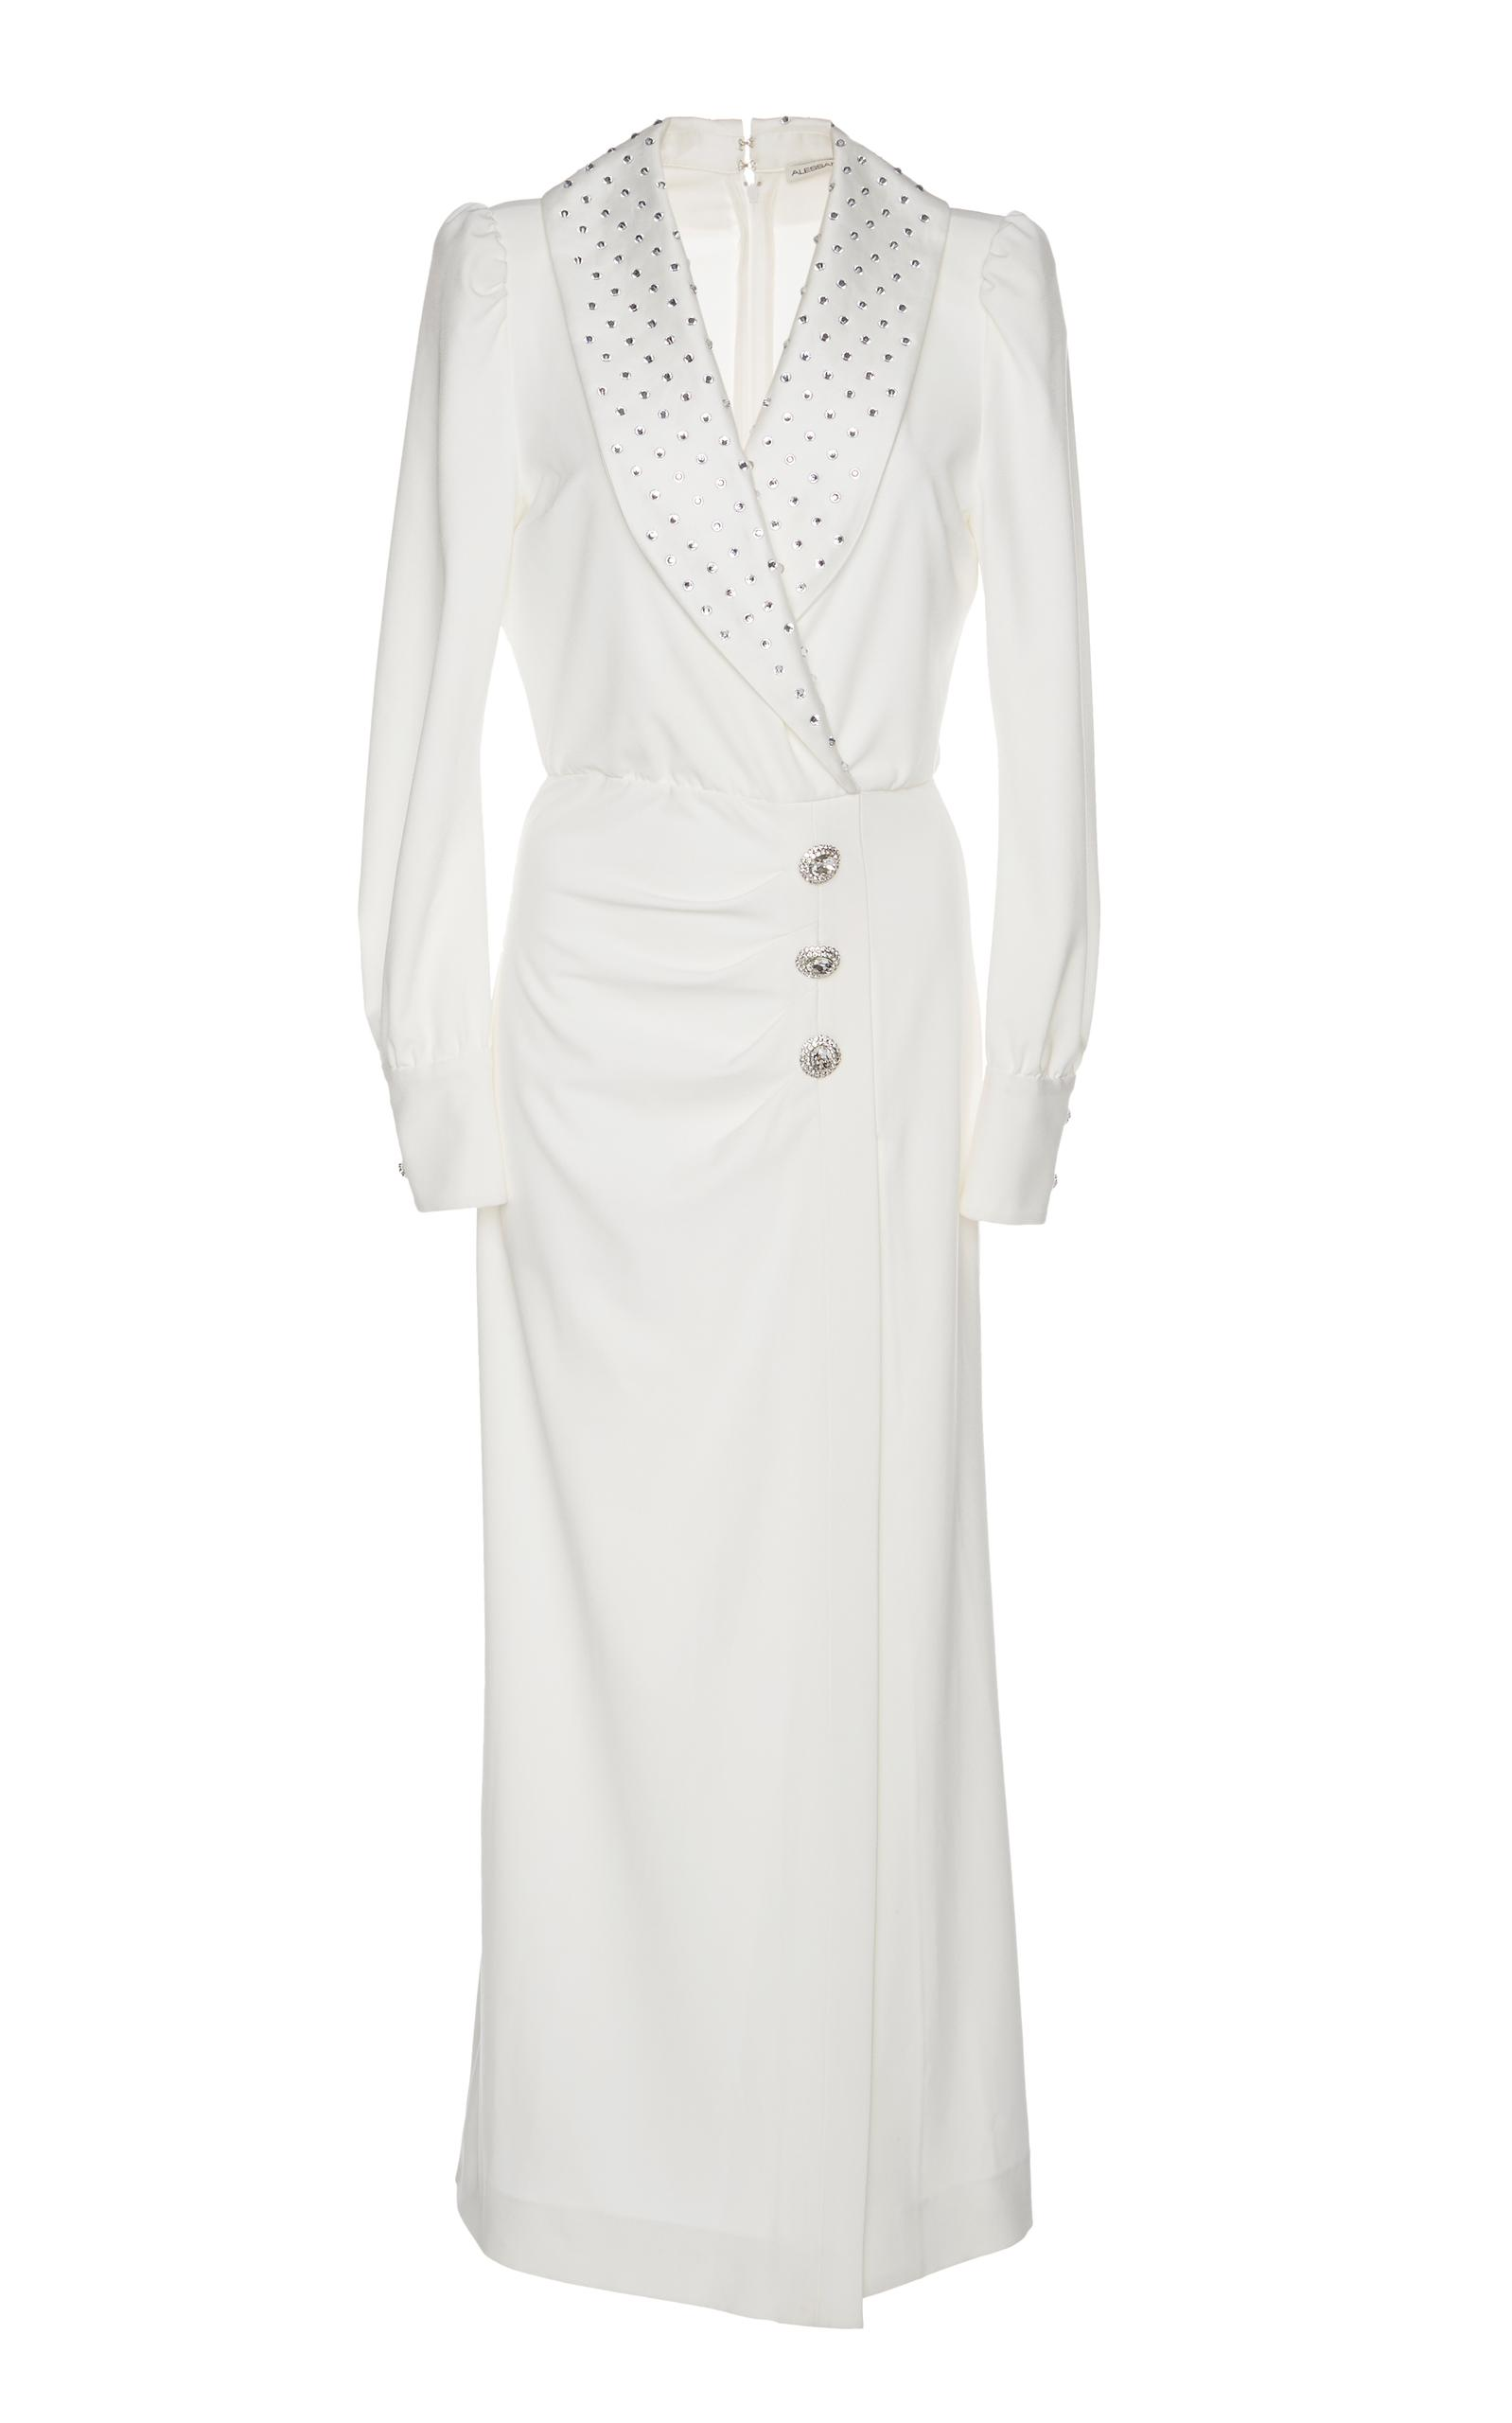 Alessandra Rich Hollywood Sable Crystal-Embellished Dress In White